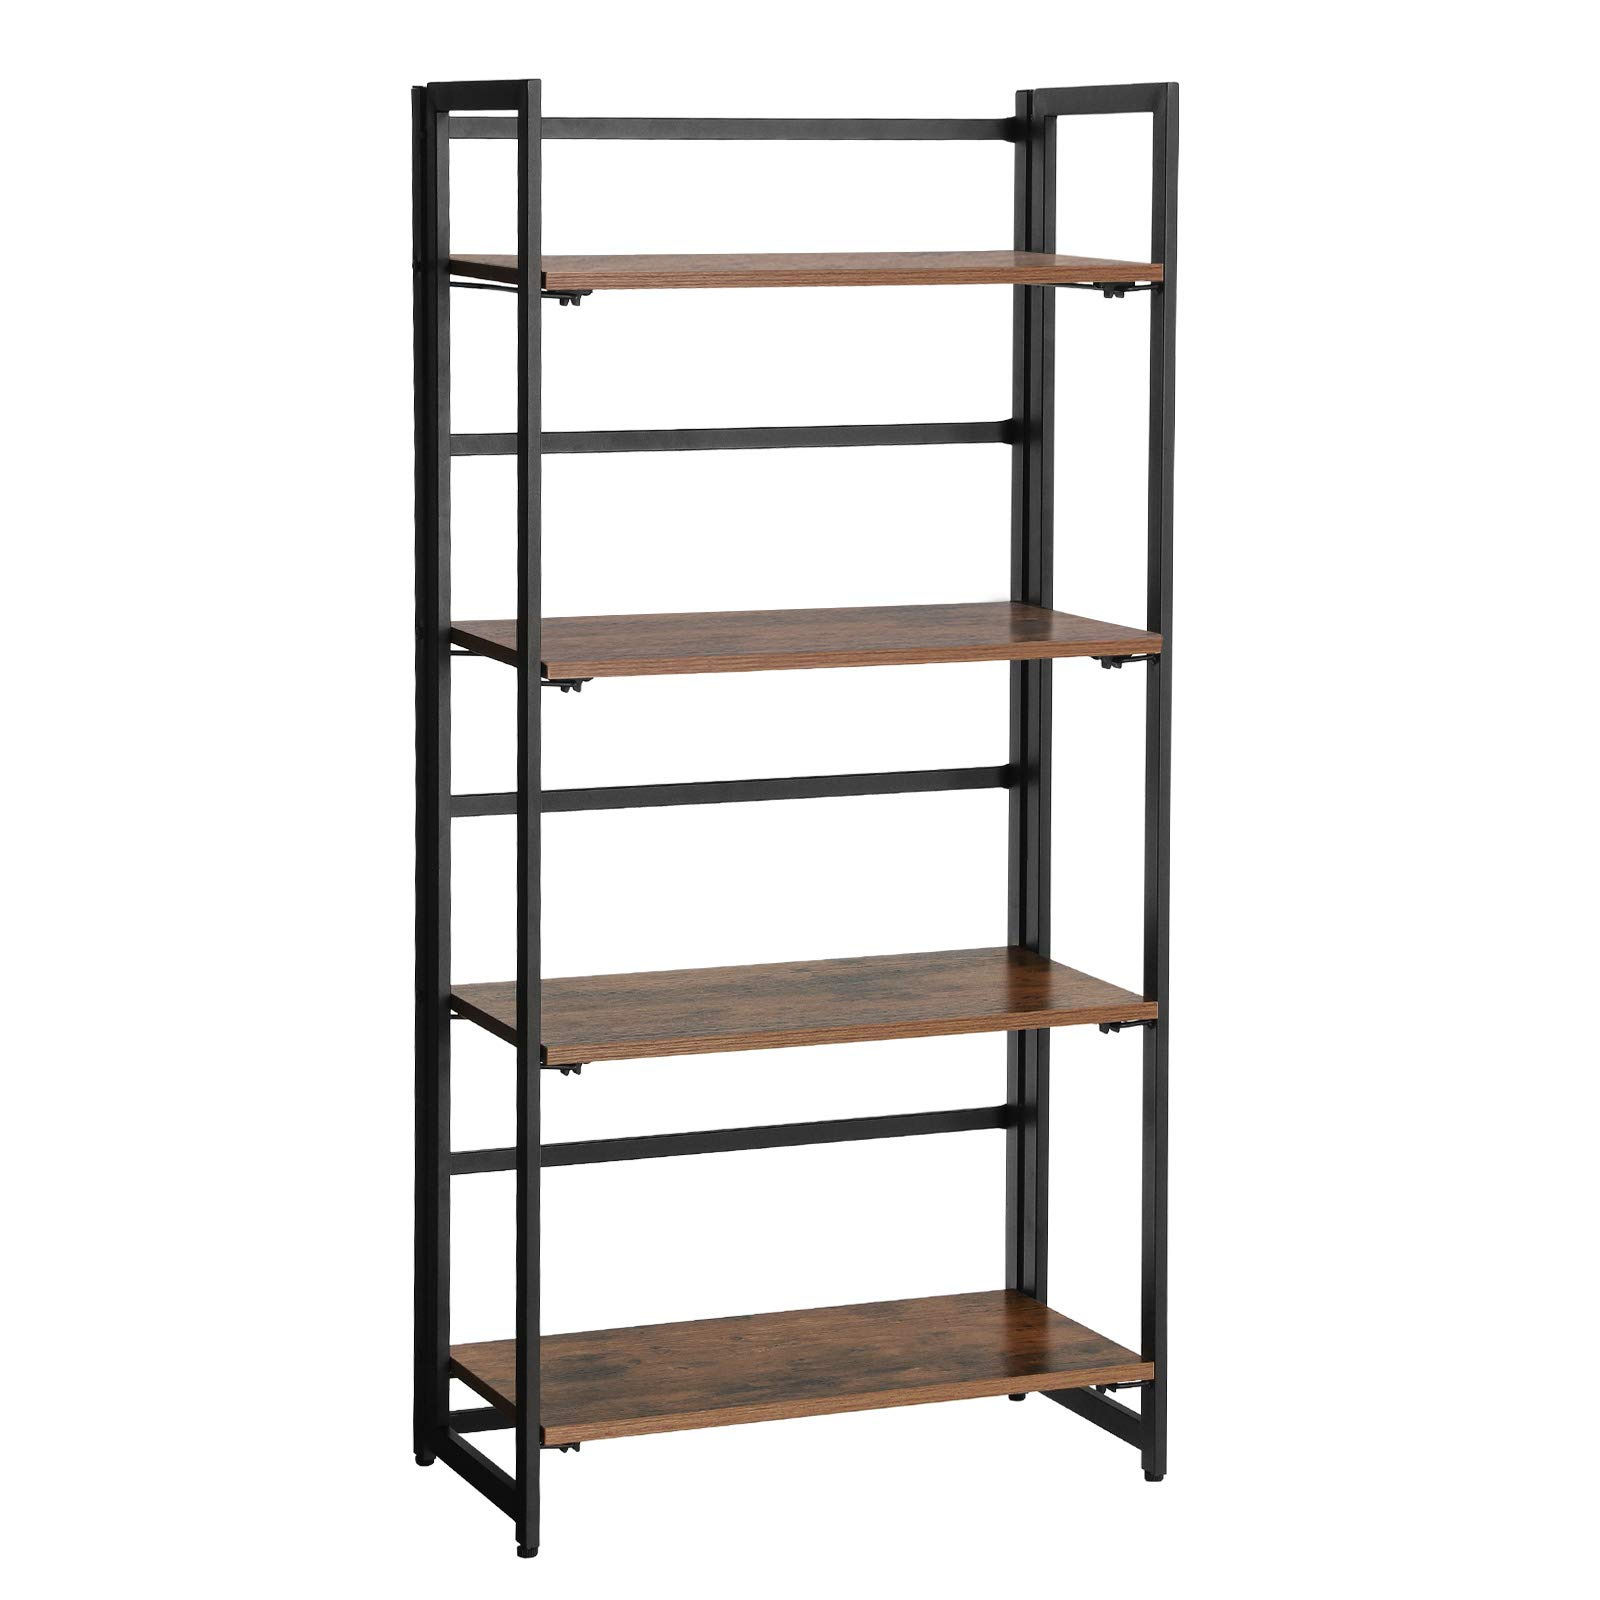 SONGMICS Vintage Bookshelf, 4-Tier Portable Ladder Shelf, Folding Bookcase, Wood Look Accent Furniture with Metal Frame, for Home Office Sturdy and Stable ULLS88X